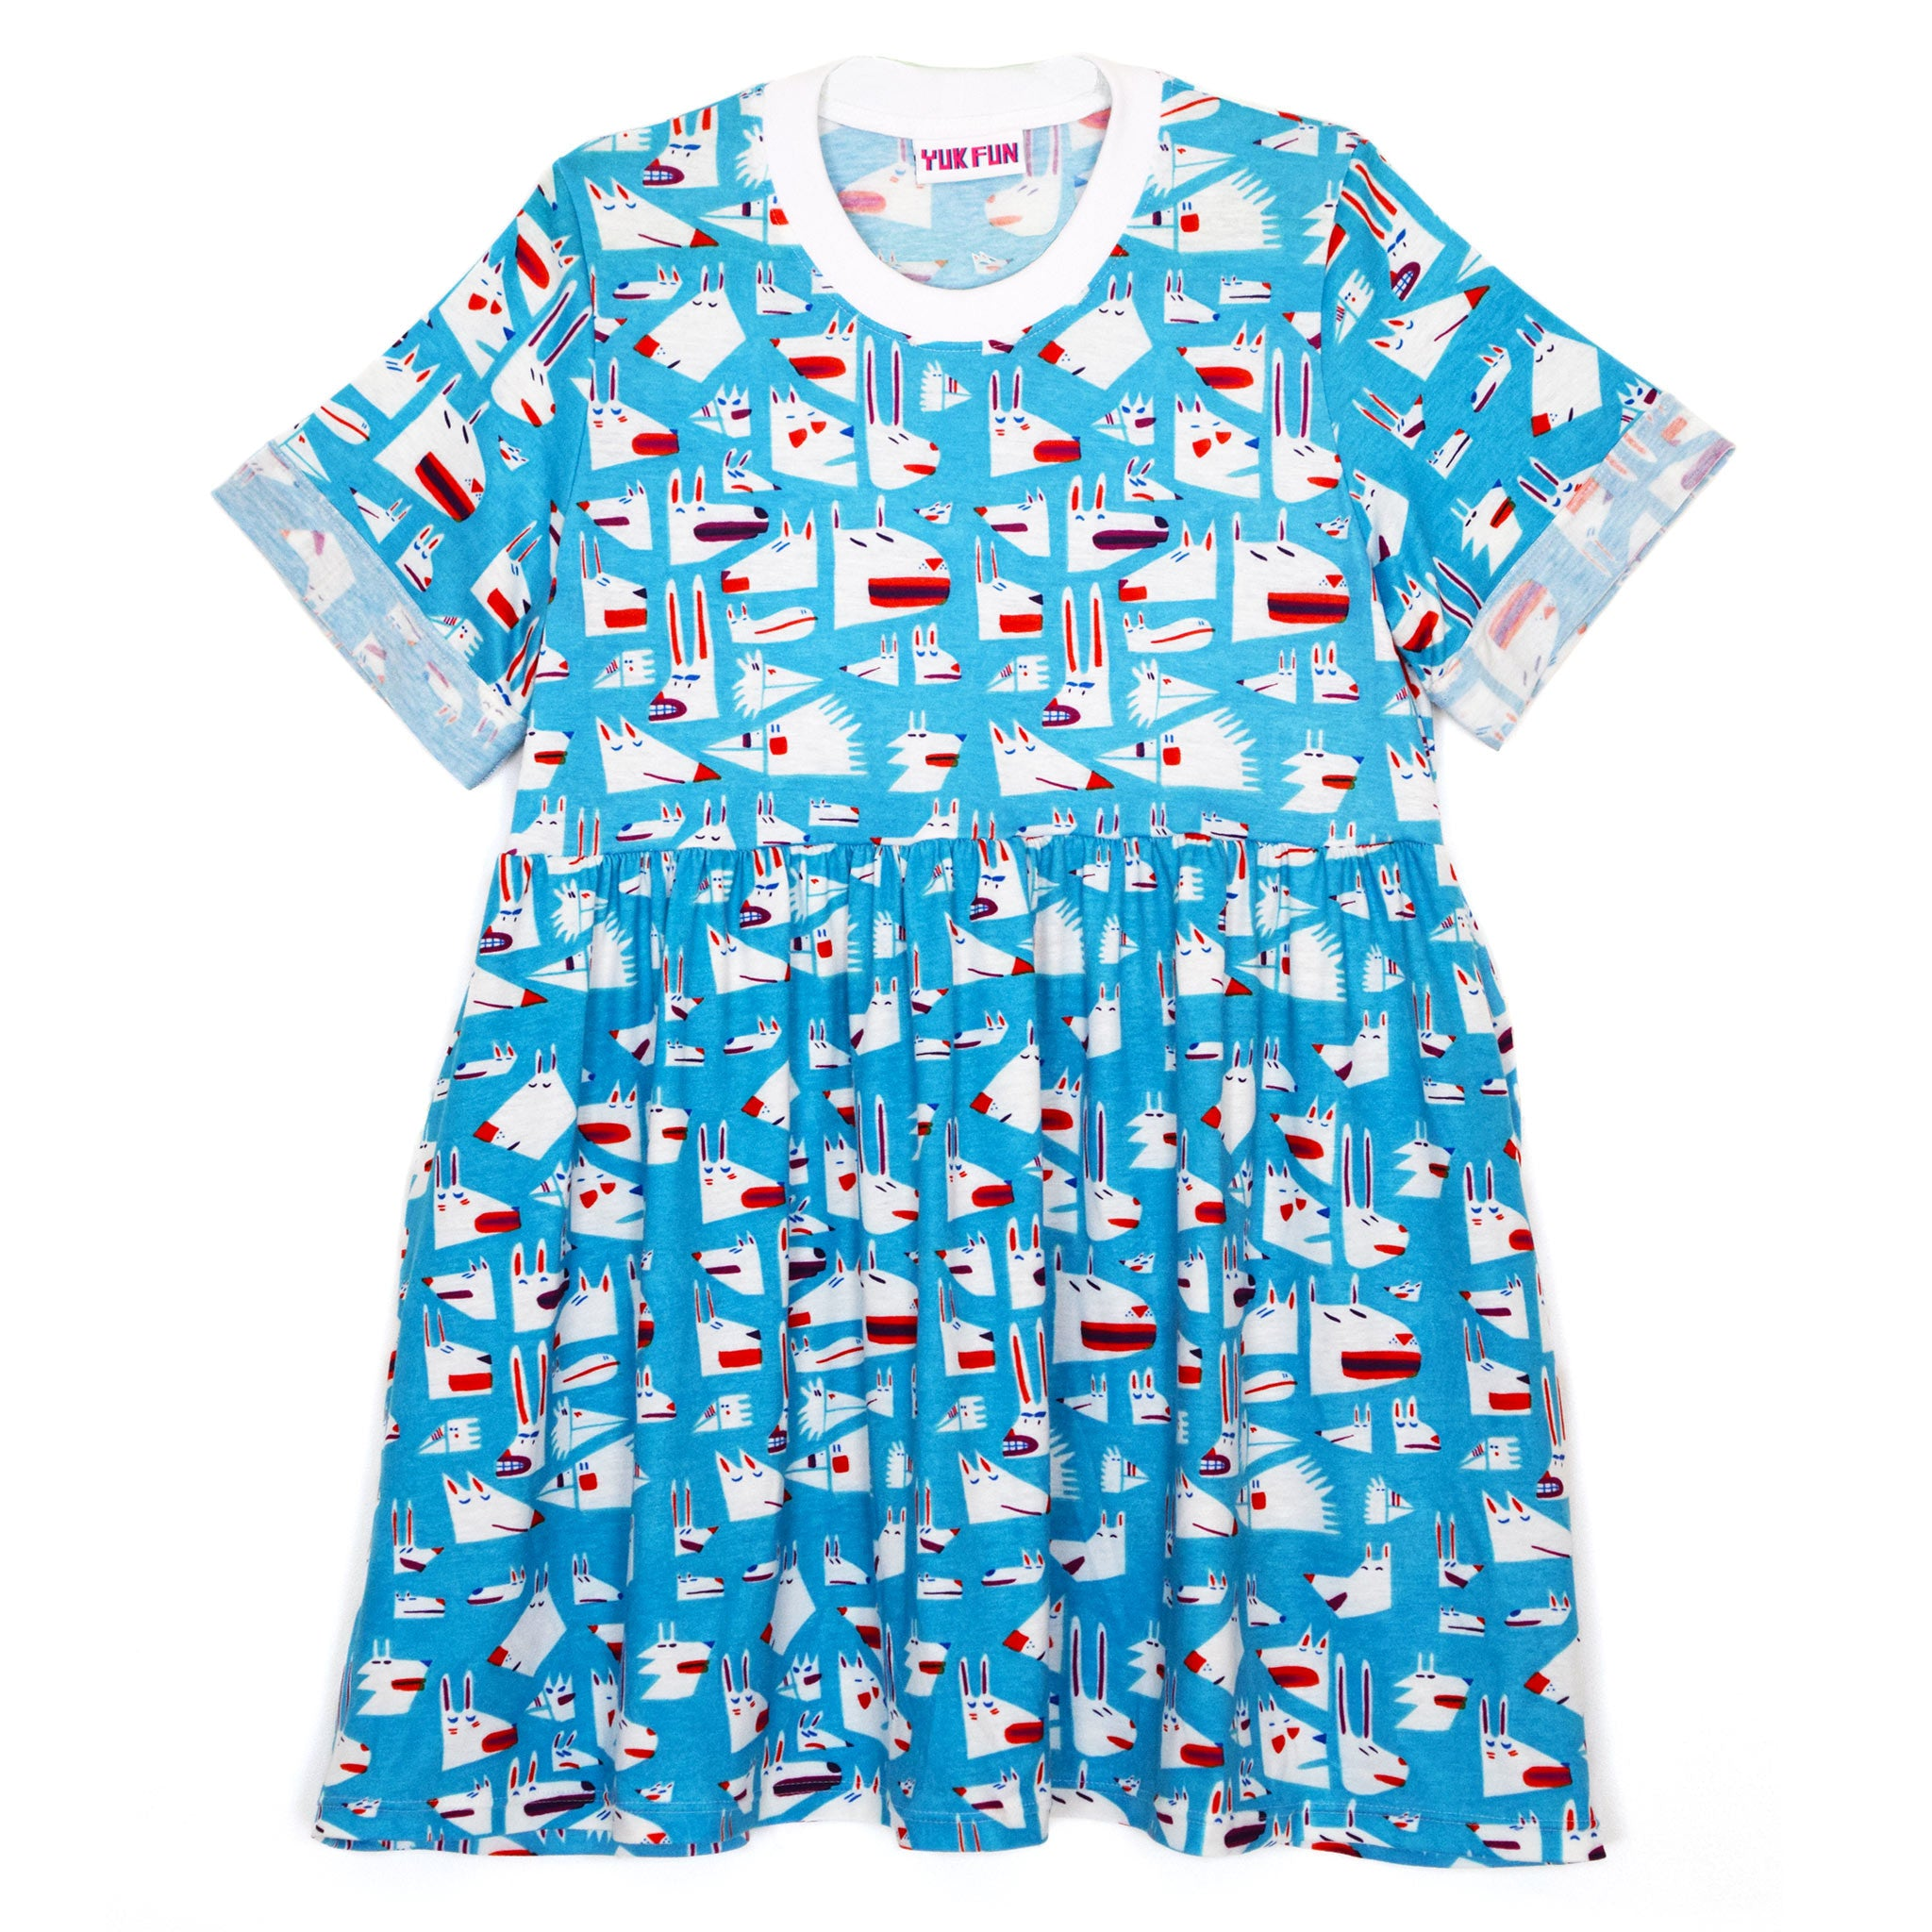 Cute print T-shirt smock dress by YUK FUN